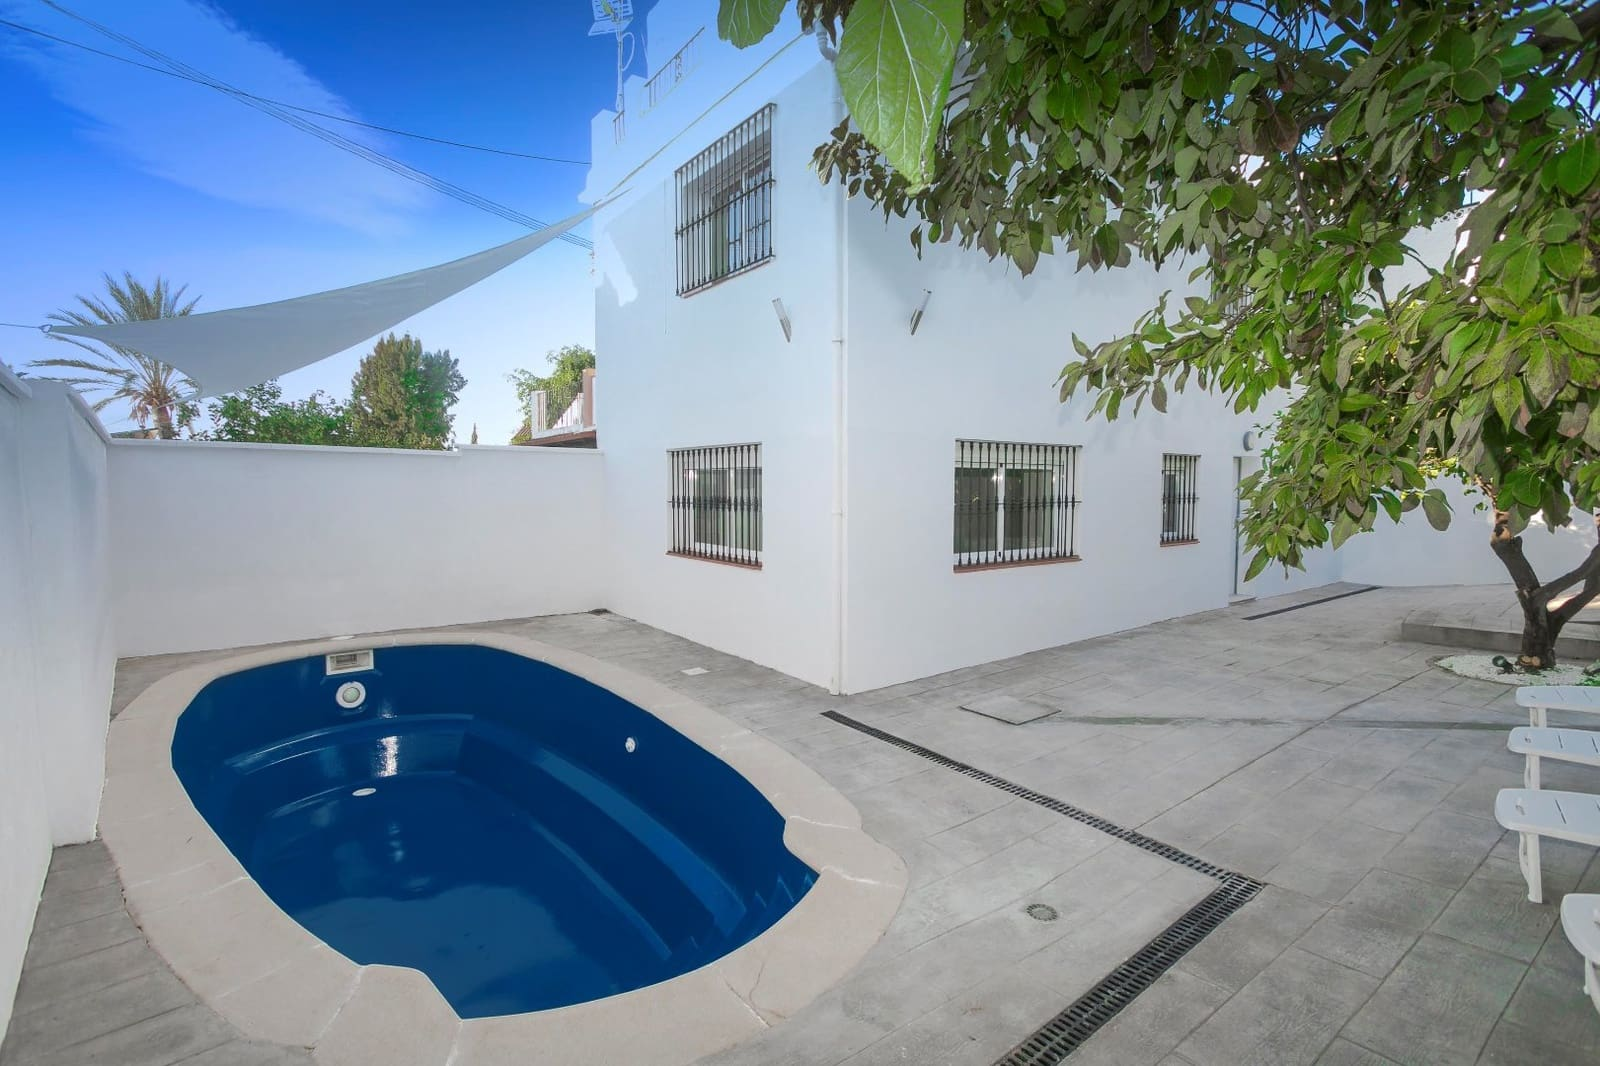 4 bedroom Semi-detached Villa for sale in Marbella with pool garage - € 420,000 (Ref: 4958716)